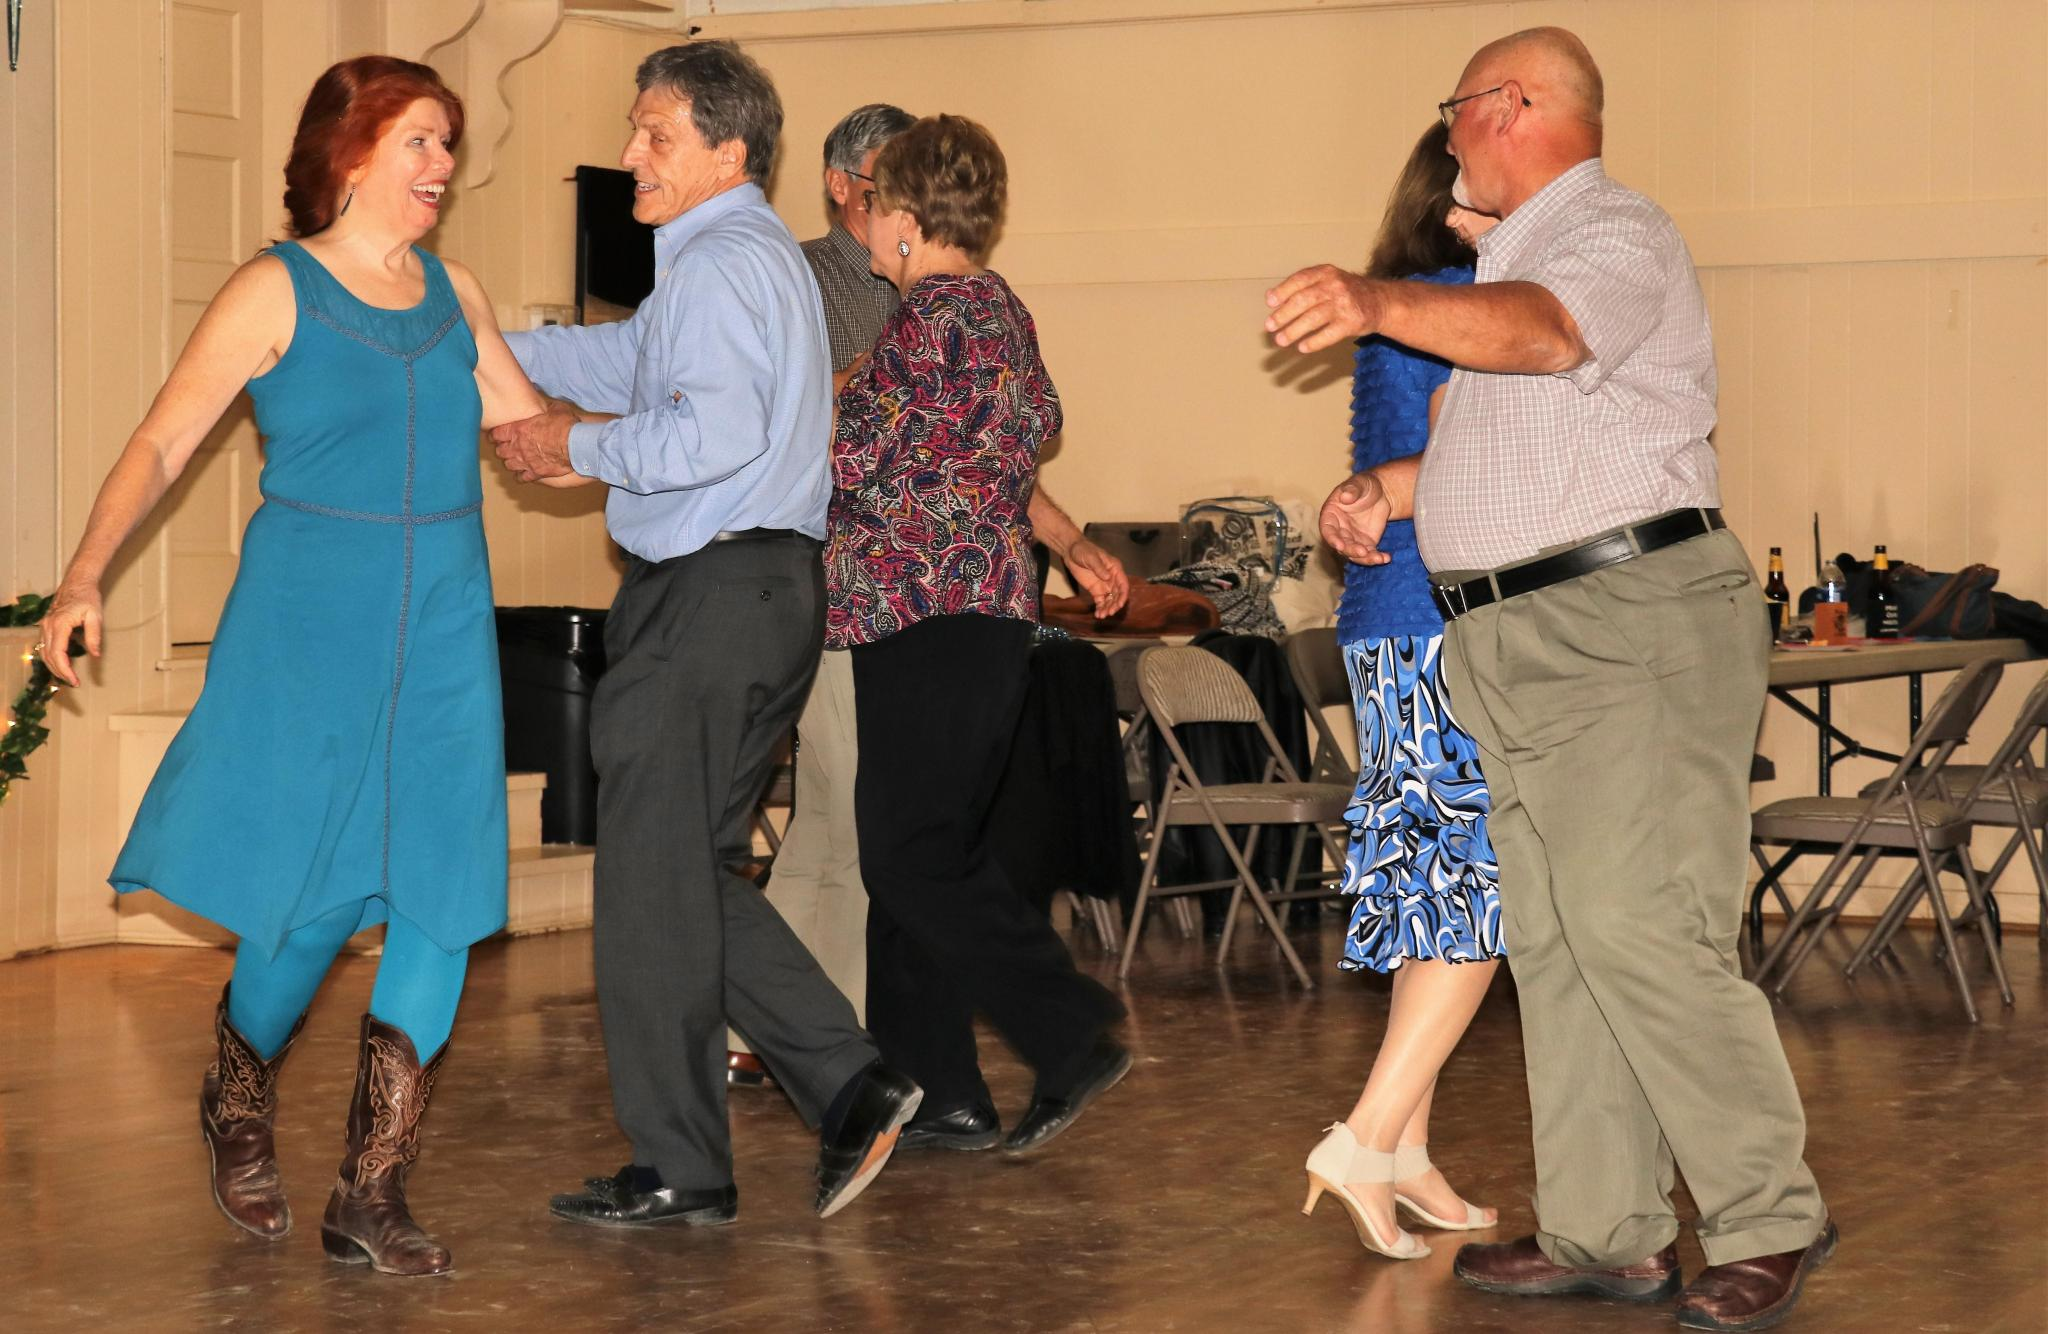 Gary E. McKee captured these images at the Goodtime Polka & Waltz Club January dance.